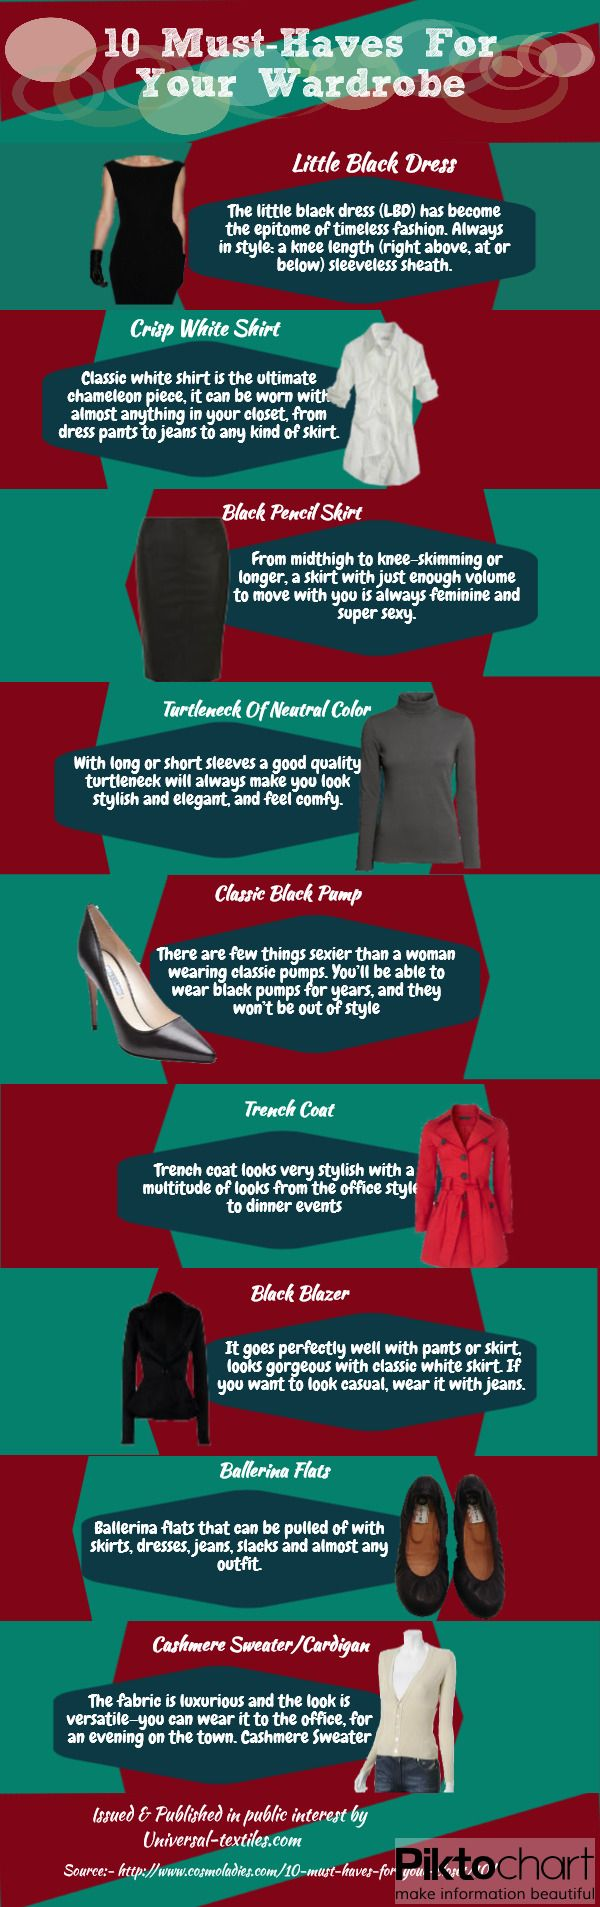 10 Must Haves For Your Wardrobe #Infographics — Lightscap3s.com